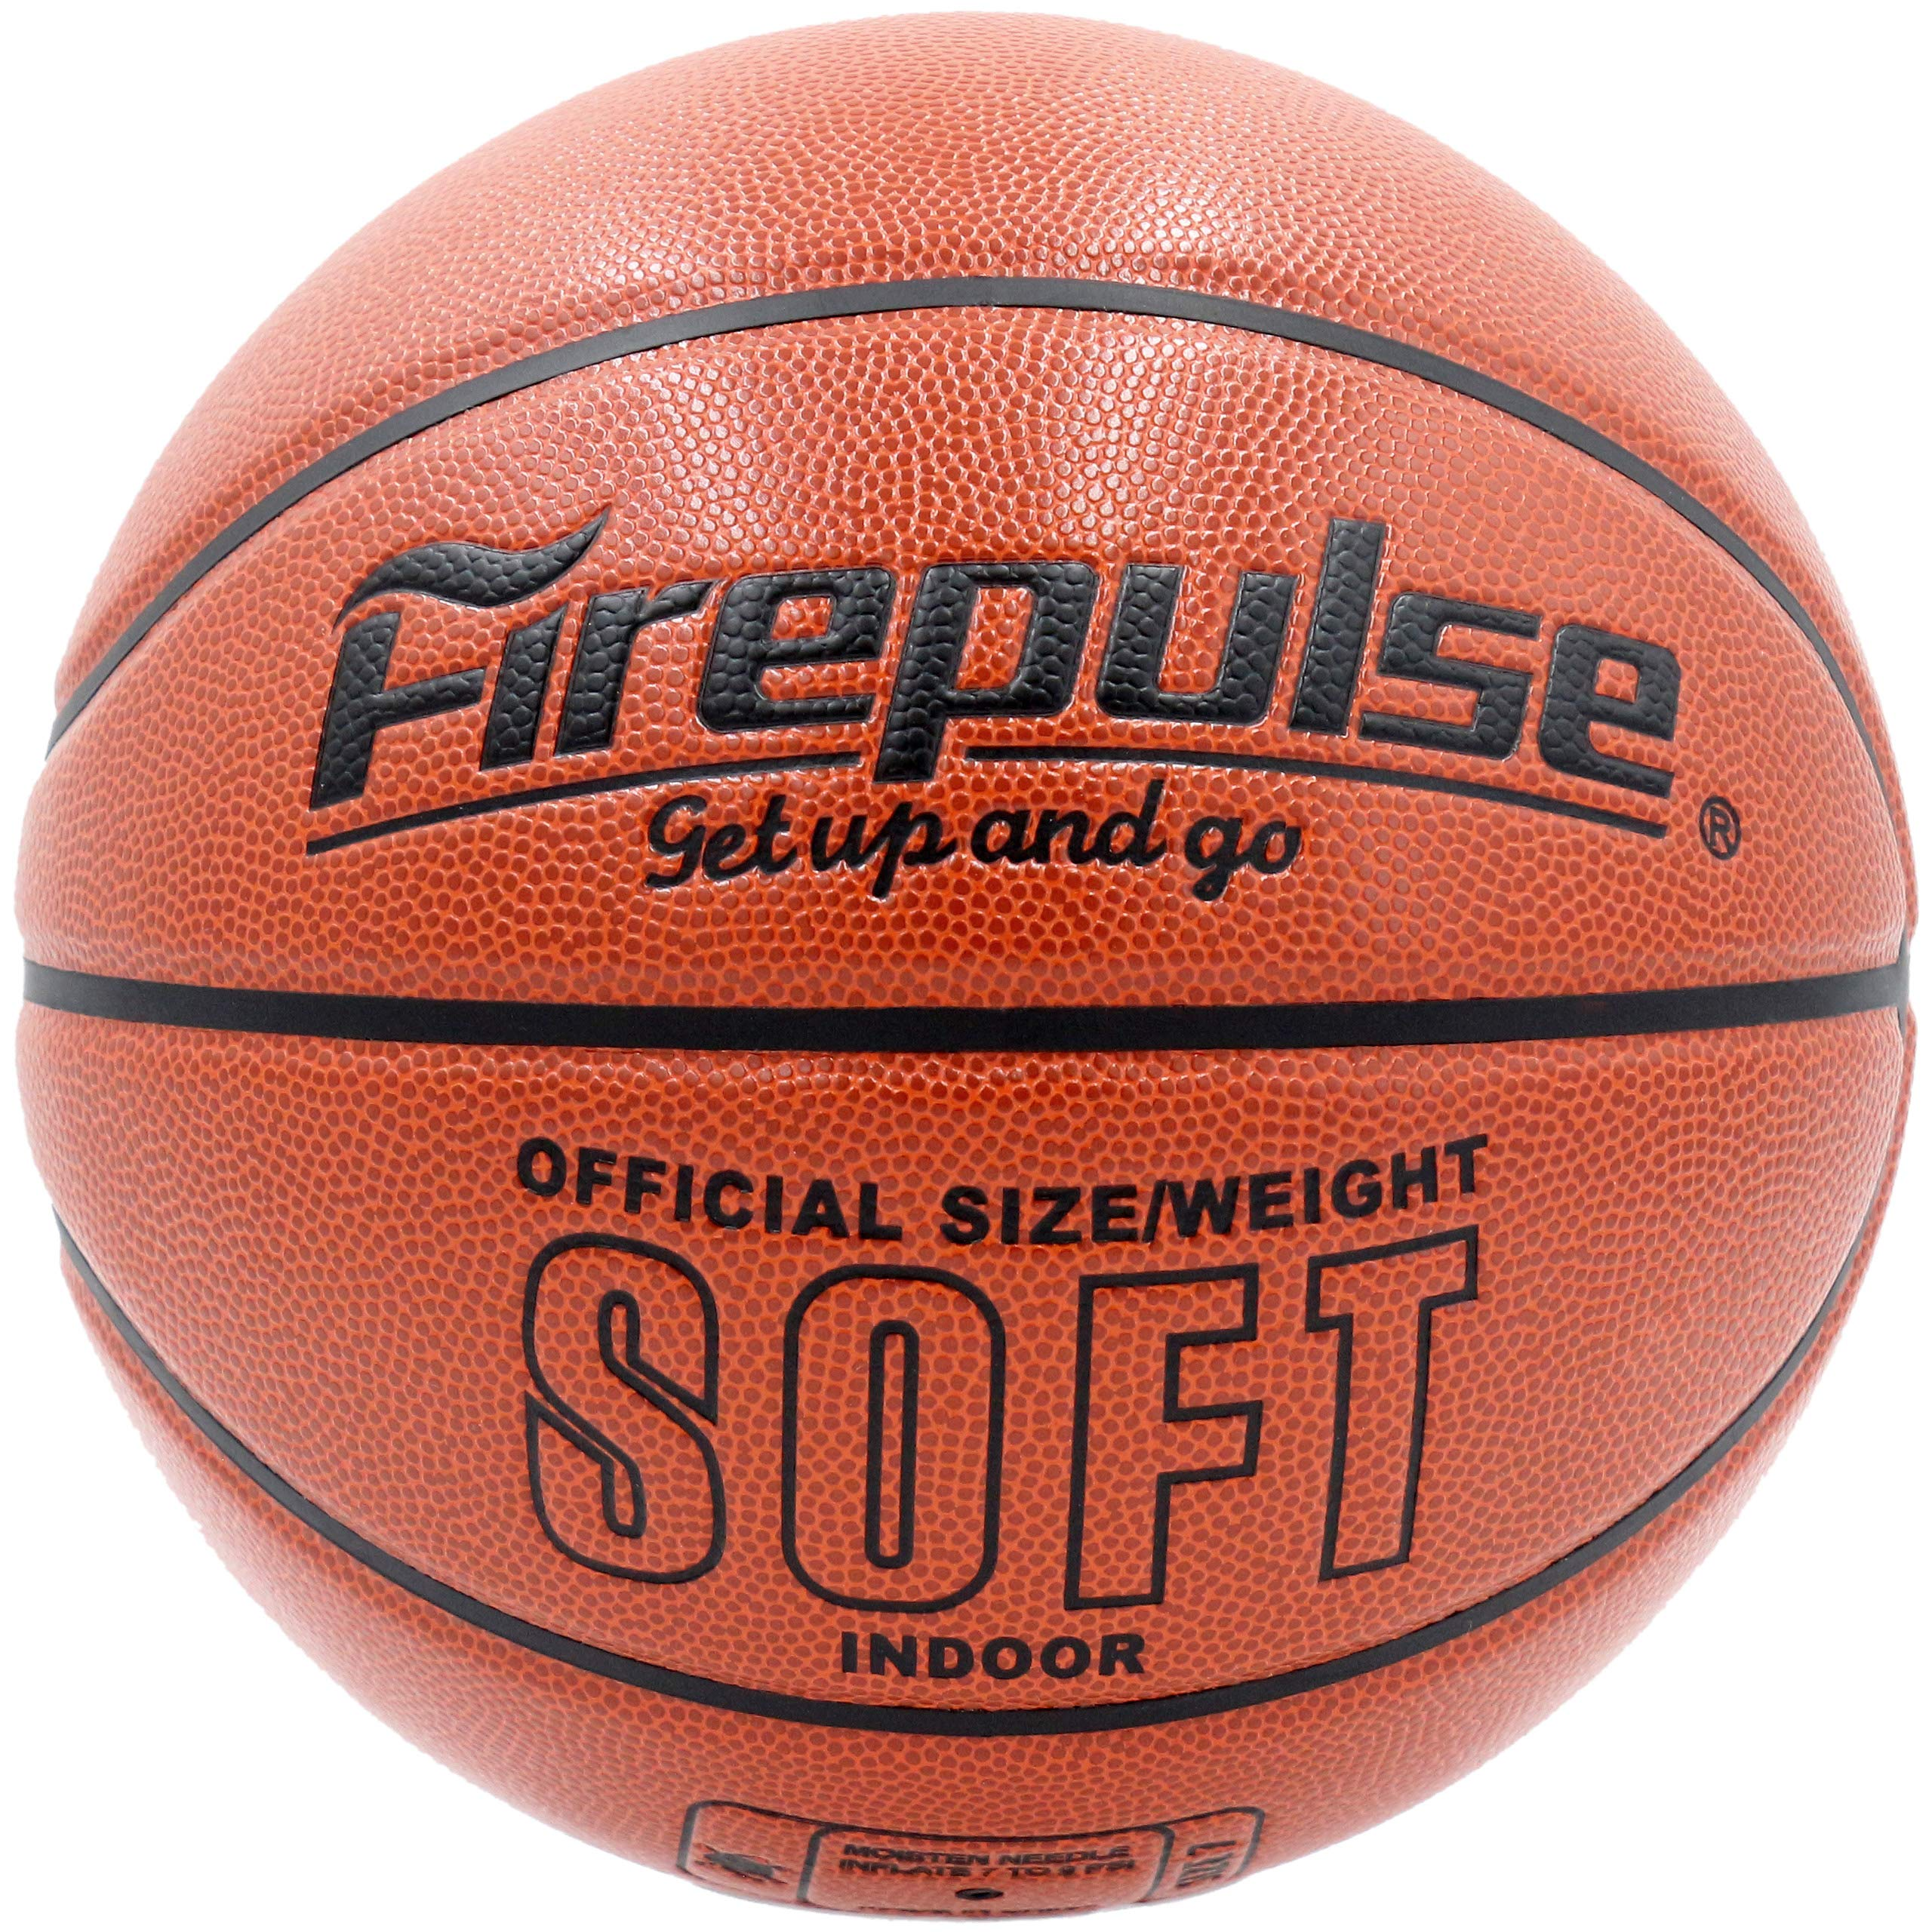 // Indoor Game Basketballs with Free Air Hand Pump,Needles,Basketball Carry Bag 29.5 FIREPULSE Soft Microfiber Composite Basketball//Official Size 7